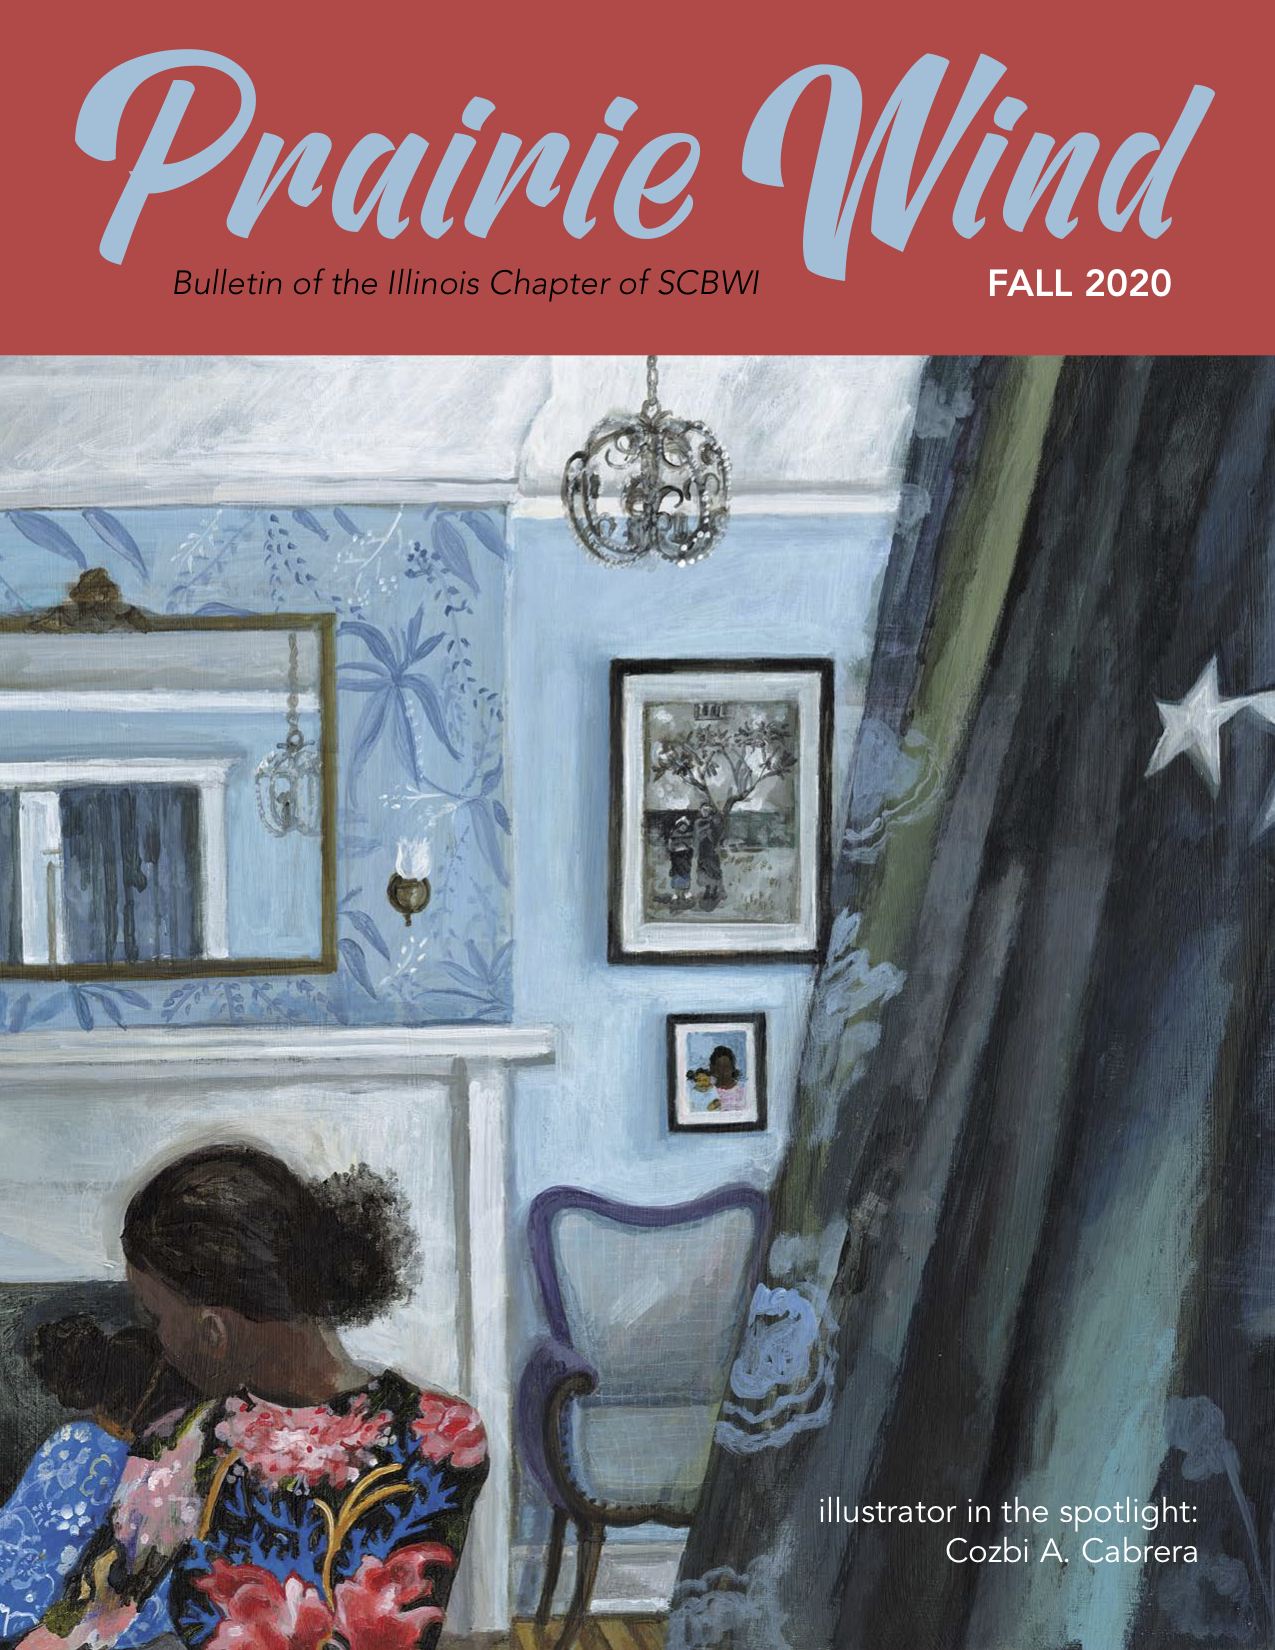 Read the current issue of the Prairie Wind, the newsletter of SCBWI-Illinois.